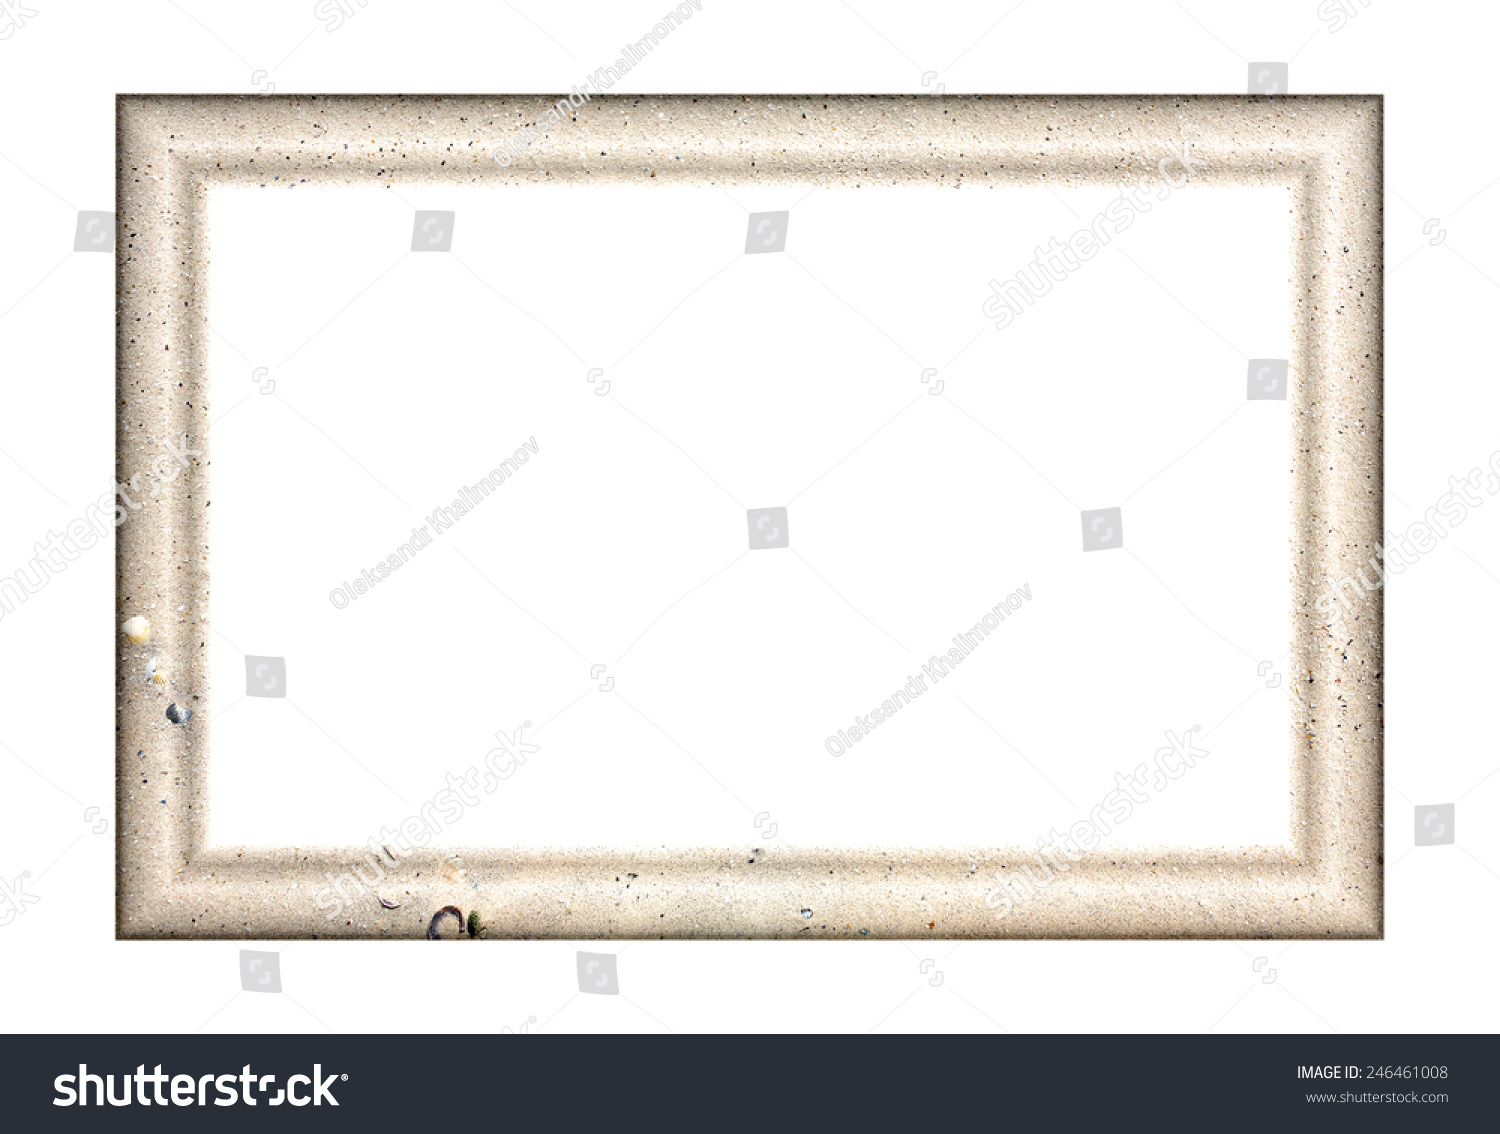 Convex pryamouolnaya empty frame paintings photos stock photo convex pryamouolnaya empty frame for paintings and photos with the texture of sea sand jeuxipadfo Images